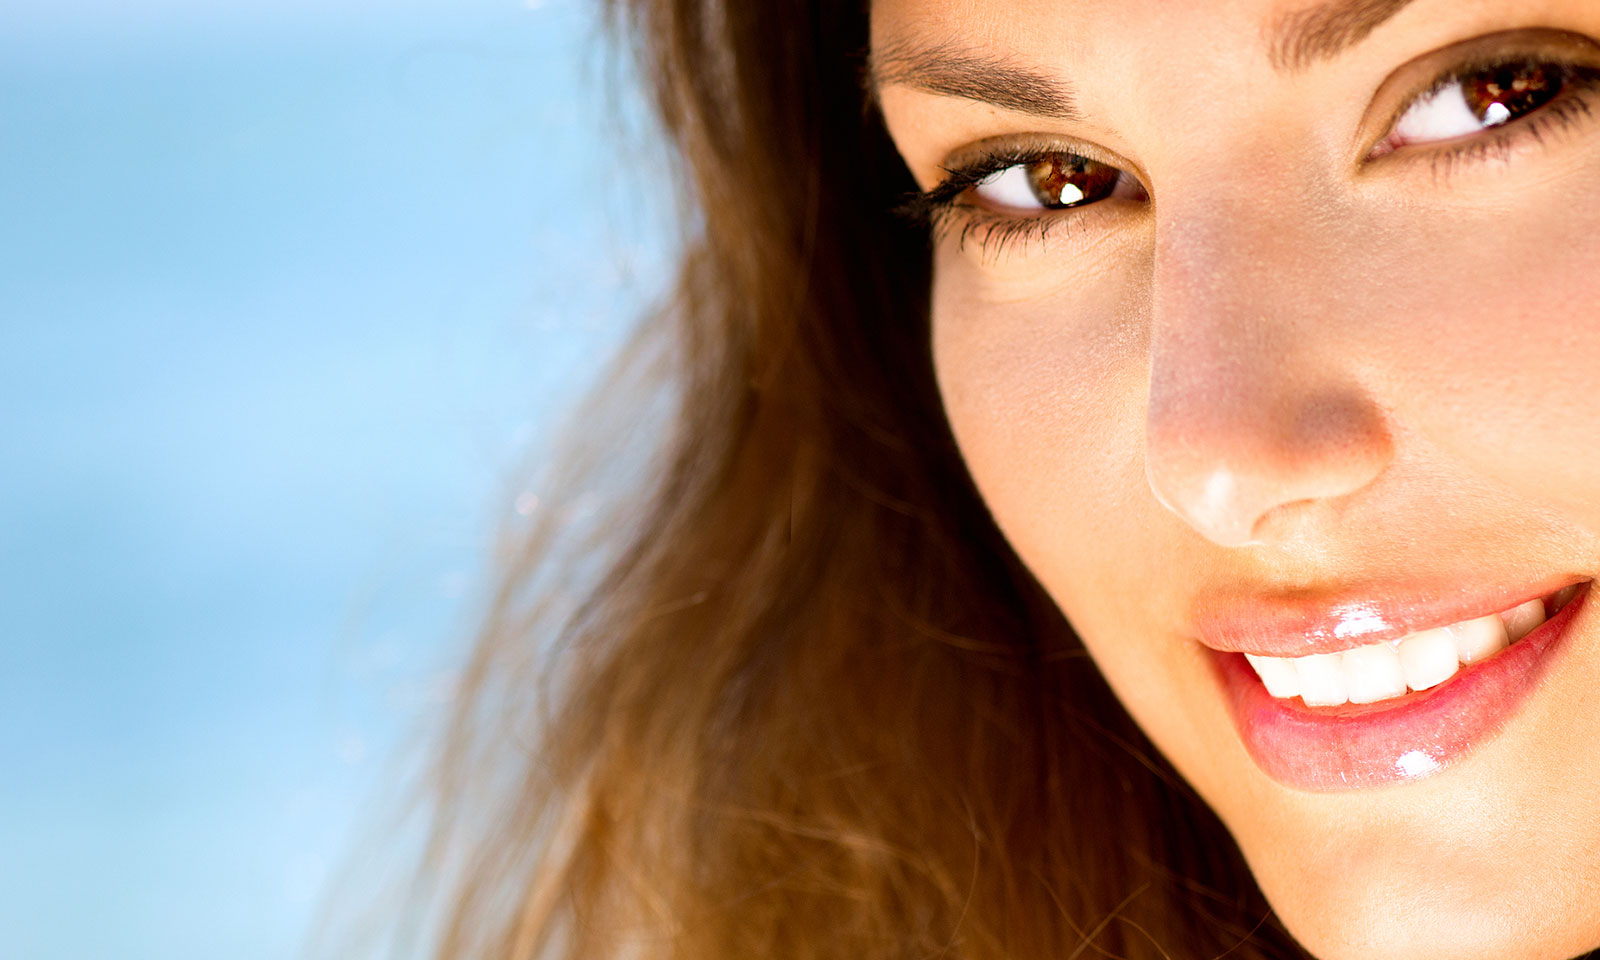 Remove skin tags, cherry angiomas and more with the Perfect Touch in Tucson angiomas